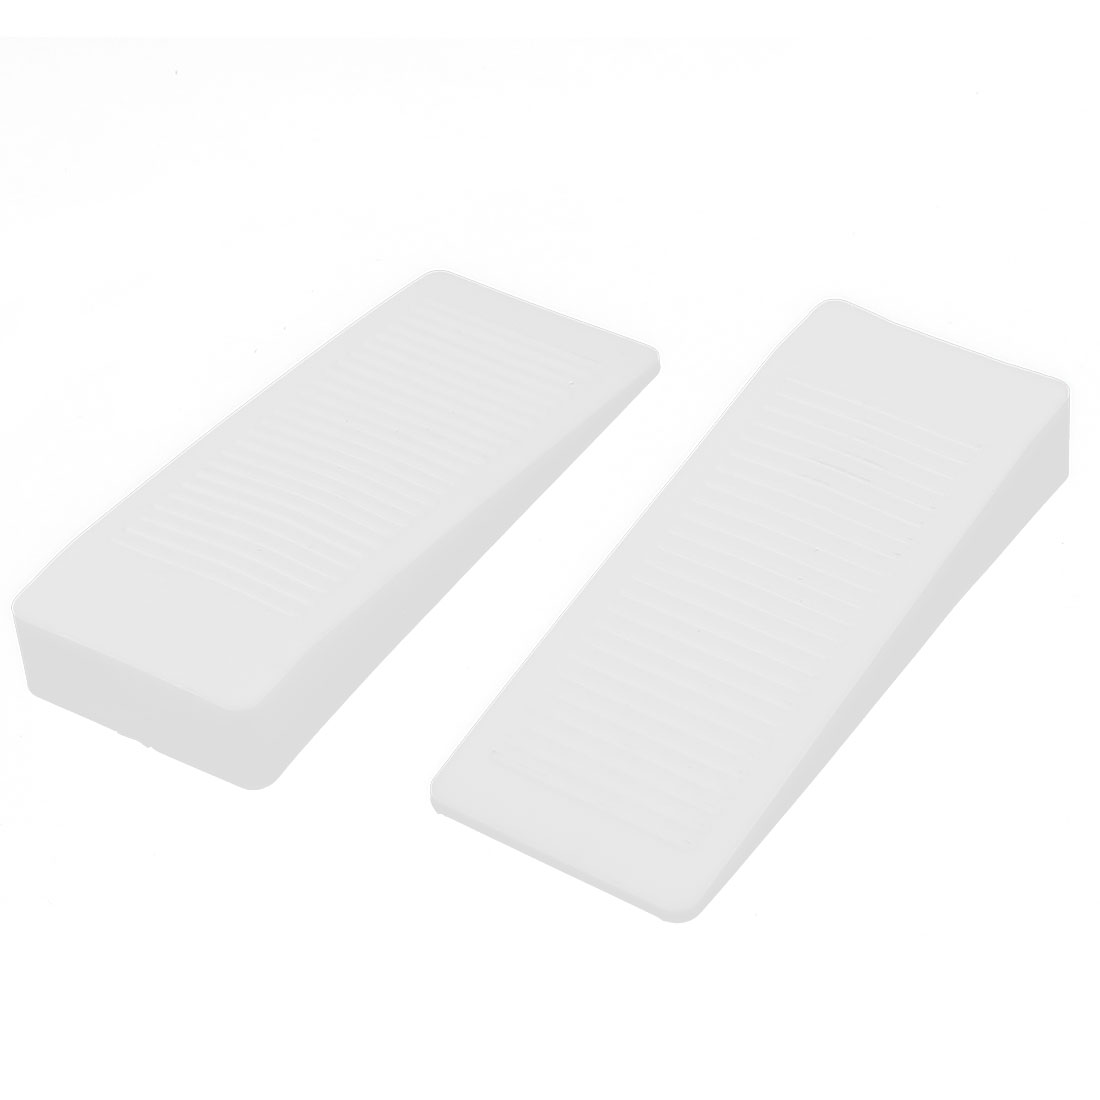 Home Office Rubber Door Stop Stoppers Jam Block Wedges Clear 2pcs